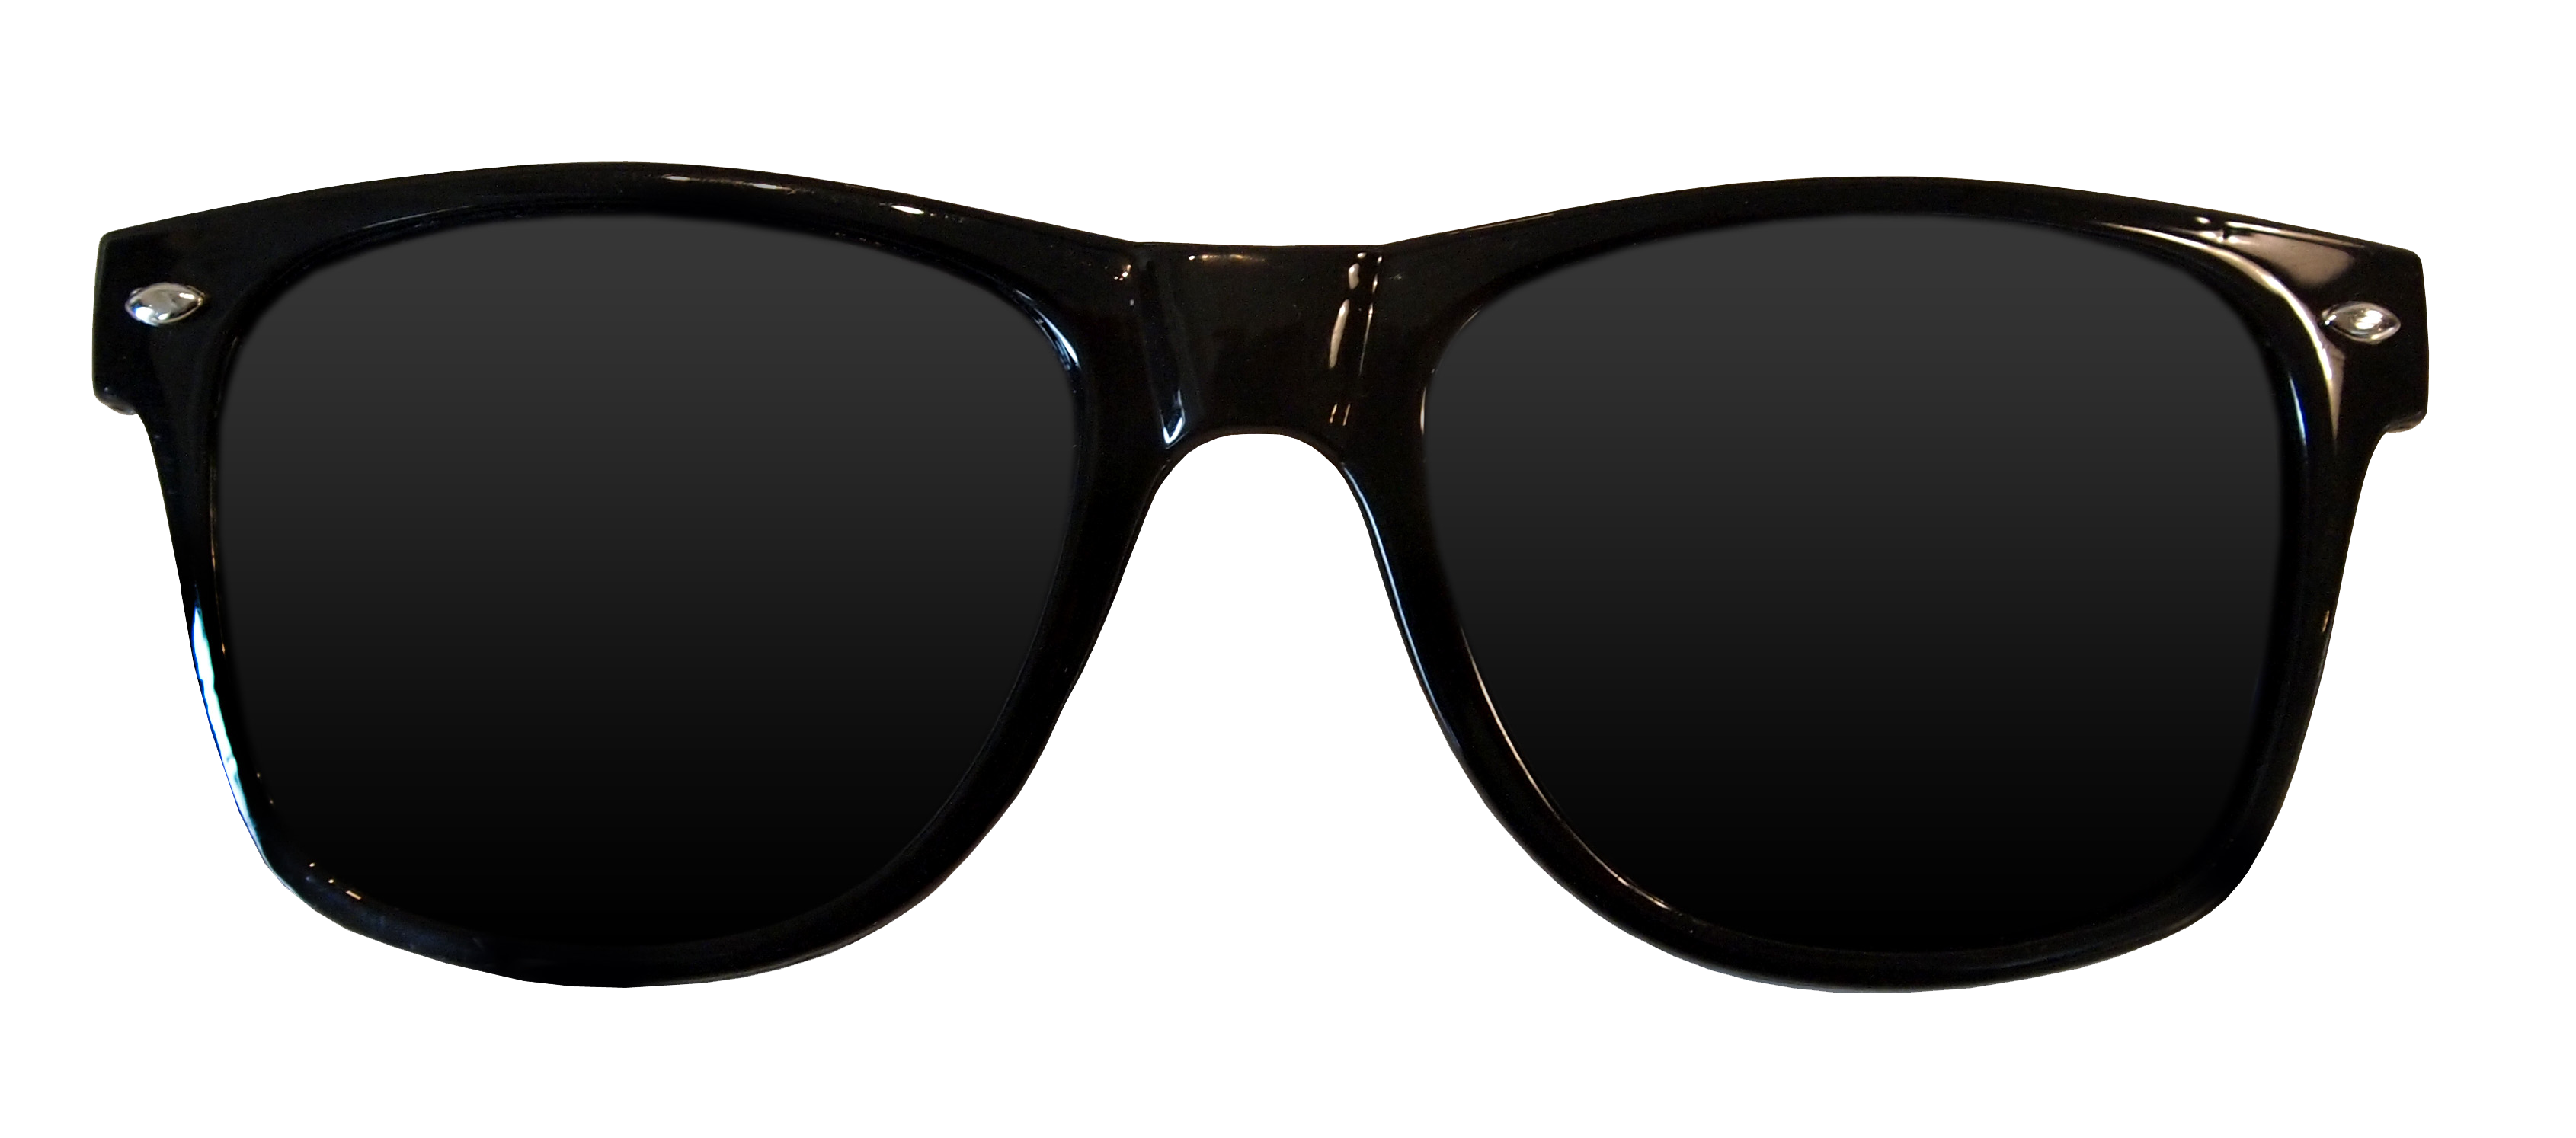 Shades png. Hq sunglasses transparent images